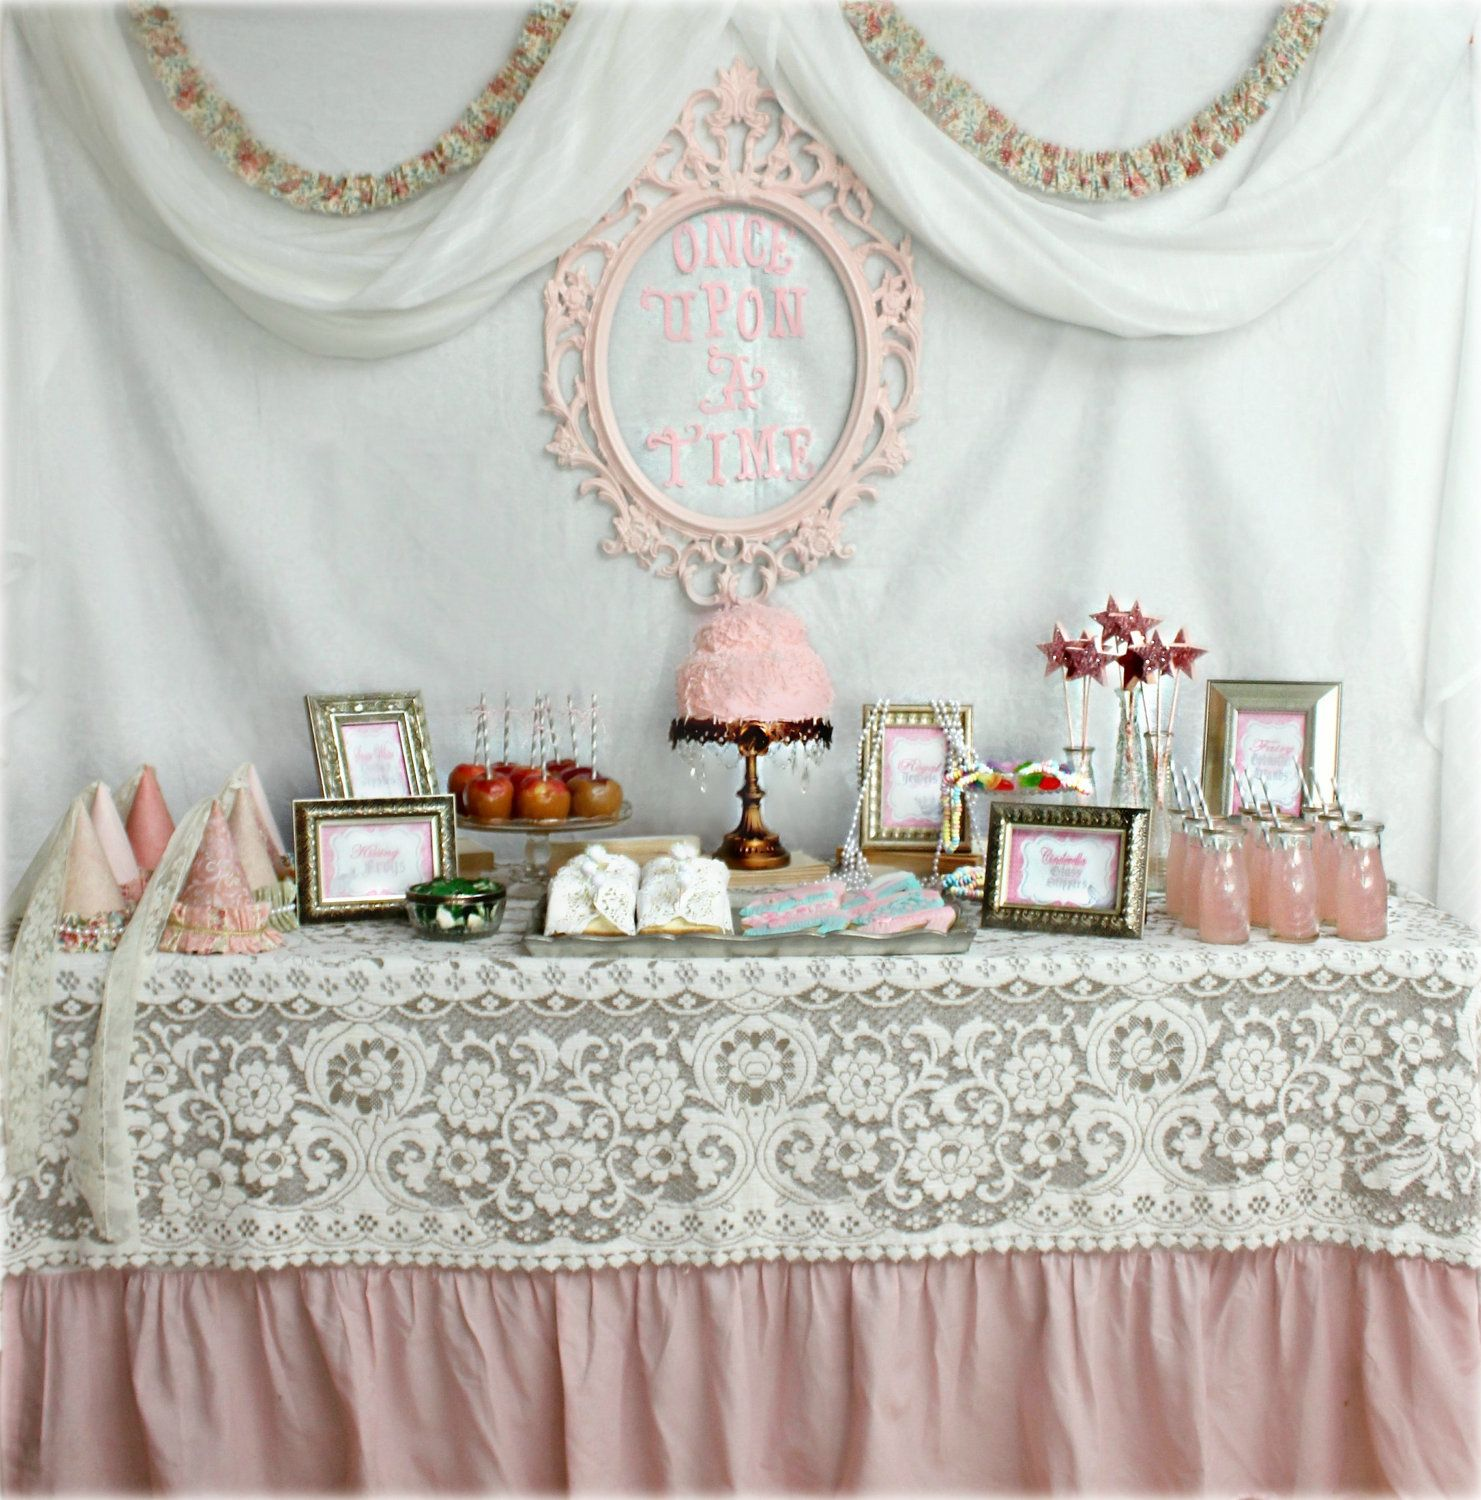 Like the lace on the pink tablecloth Princess Tea party ideas